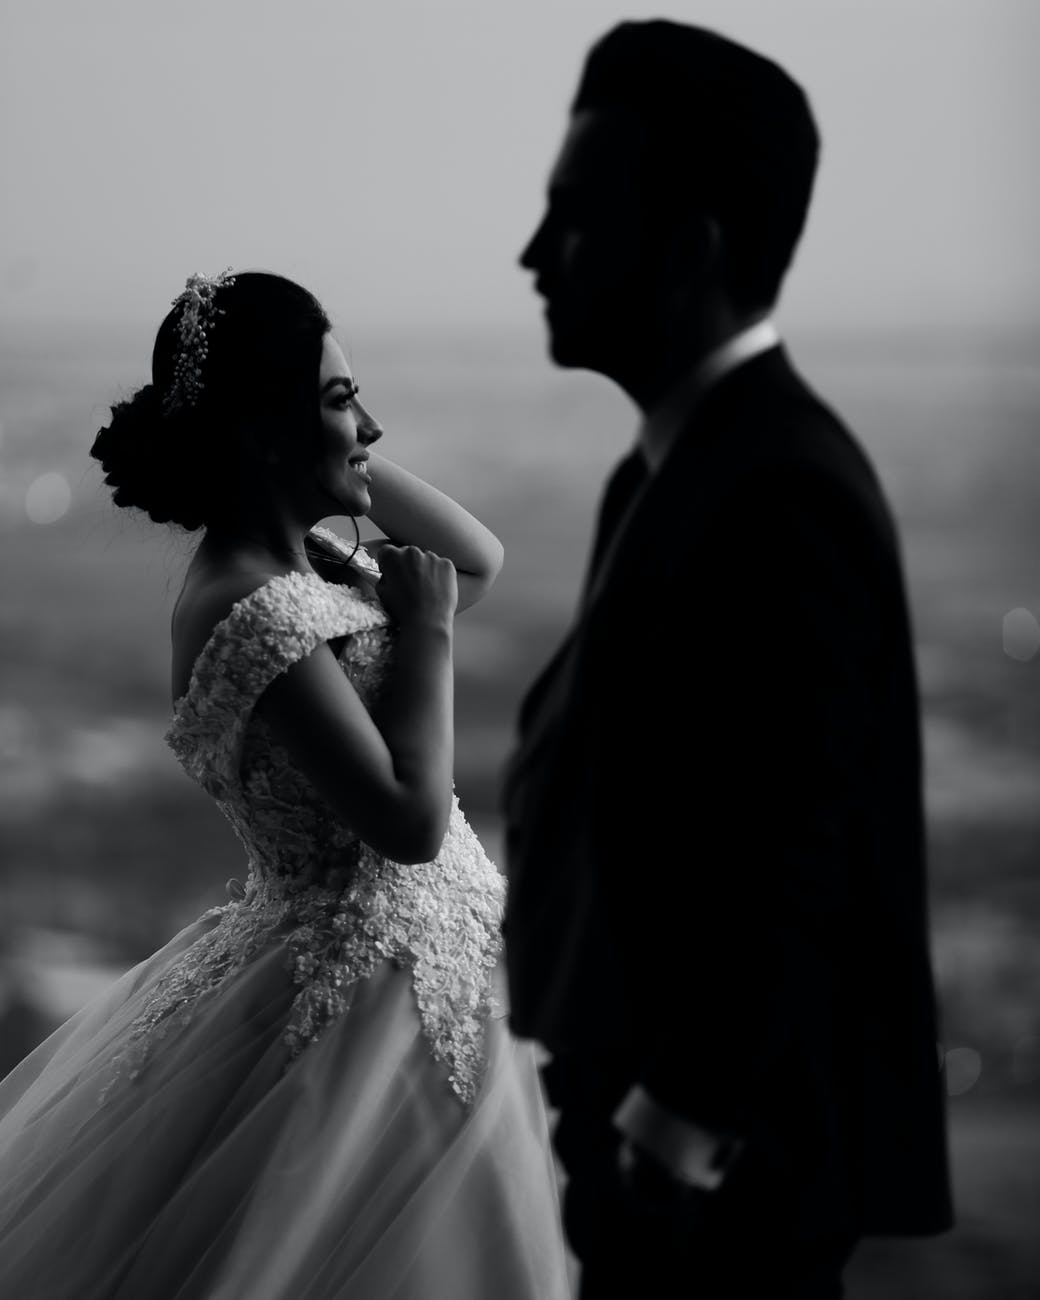 Black and white image of a bride, smiling. In the foreground is a blurry silhouette of the groom.